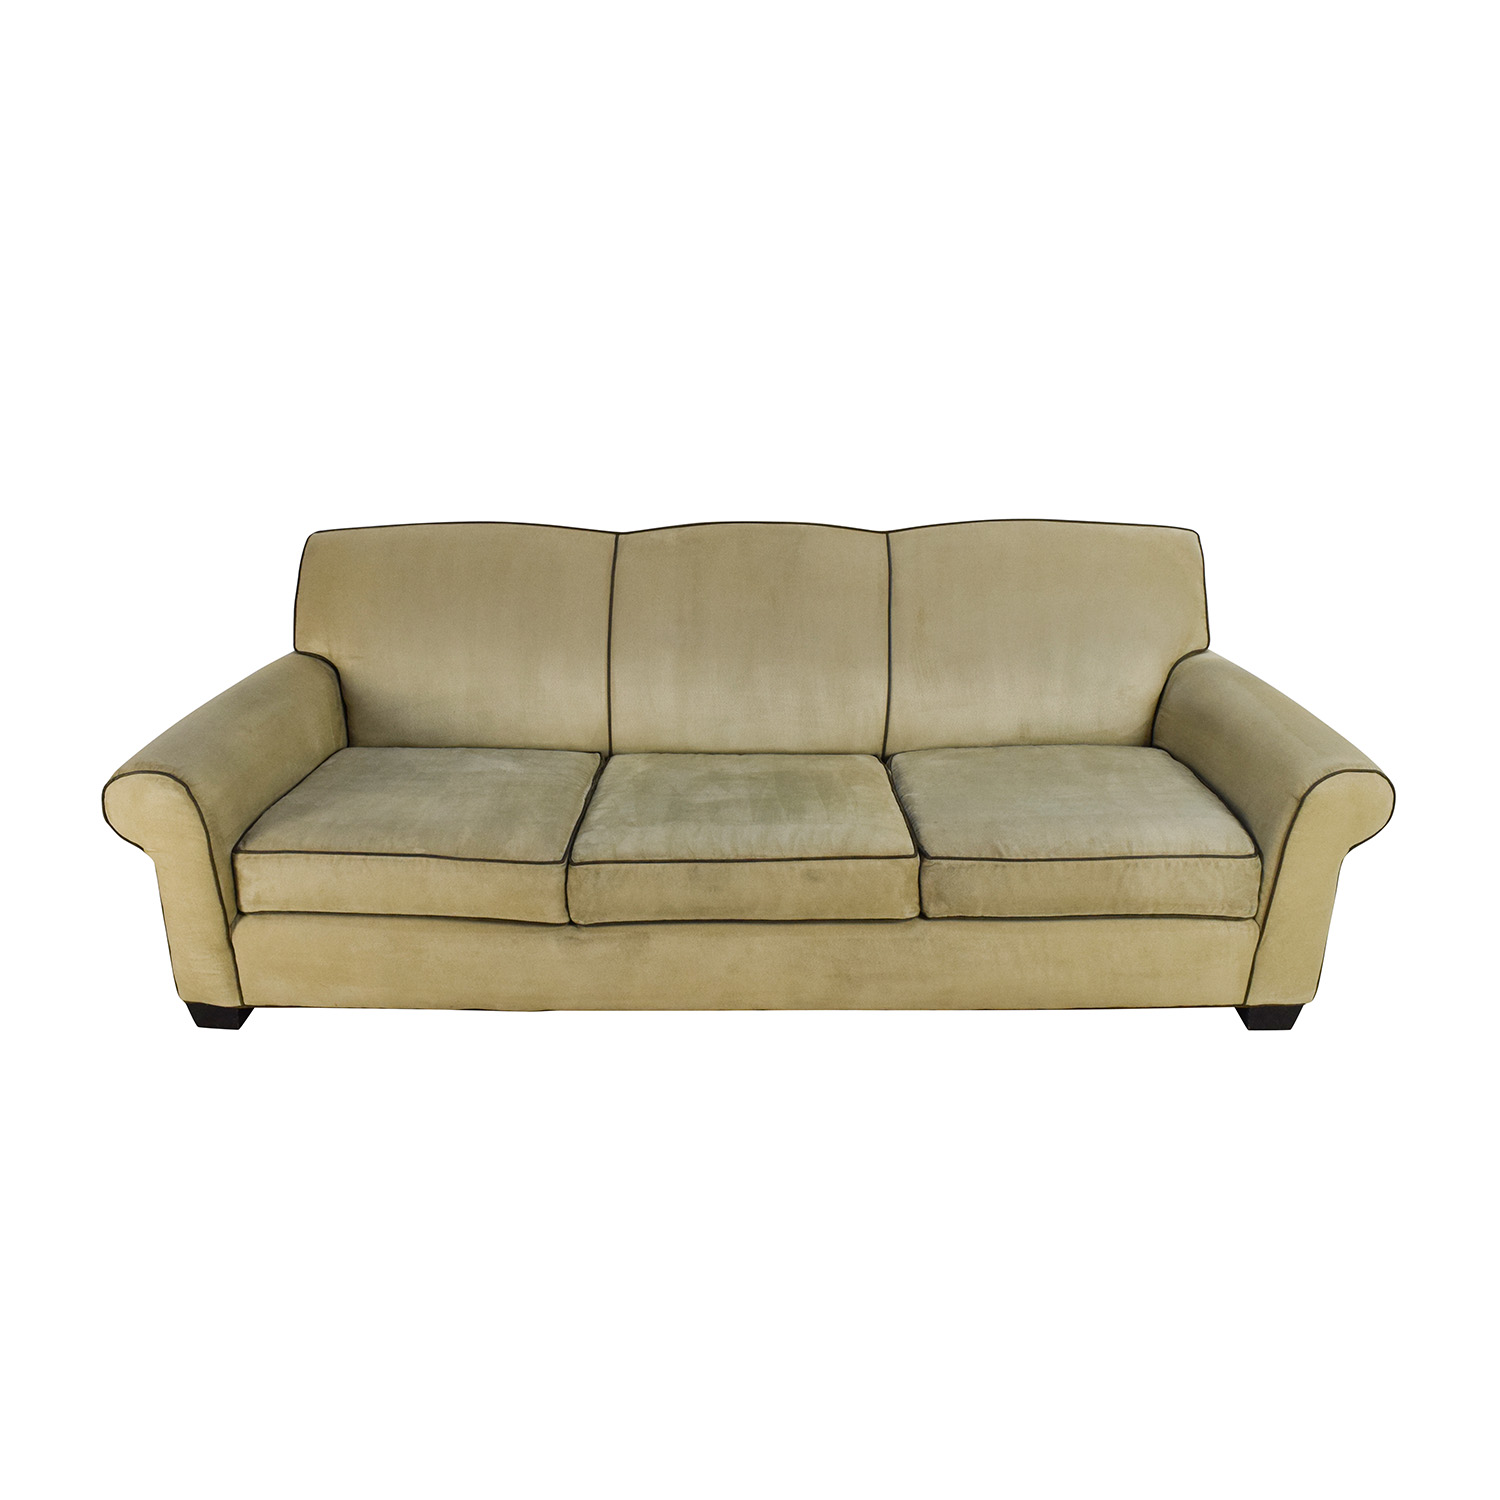 mitc gold hunter sofa costco pet bed microsuede sofas furnitures fresh all you